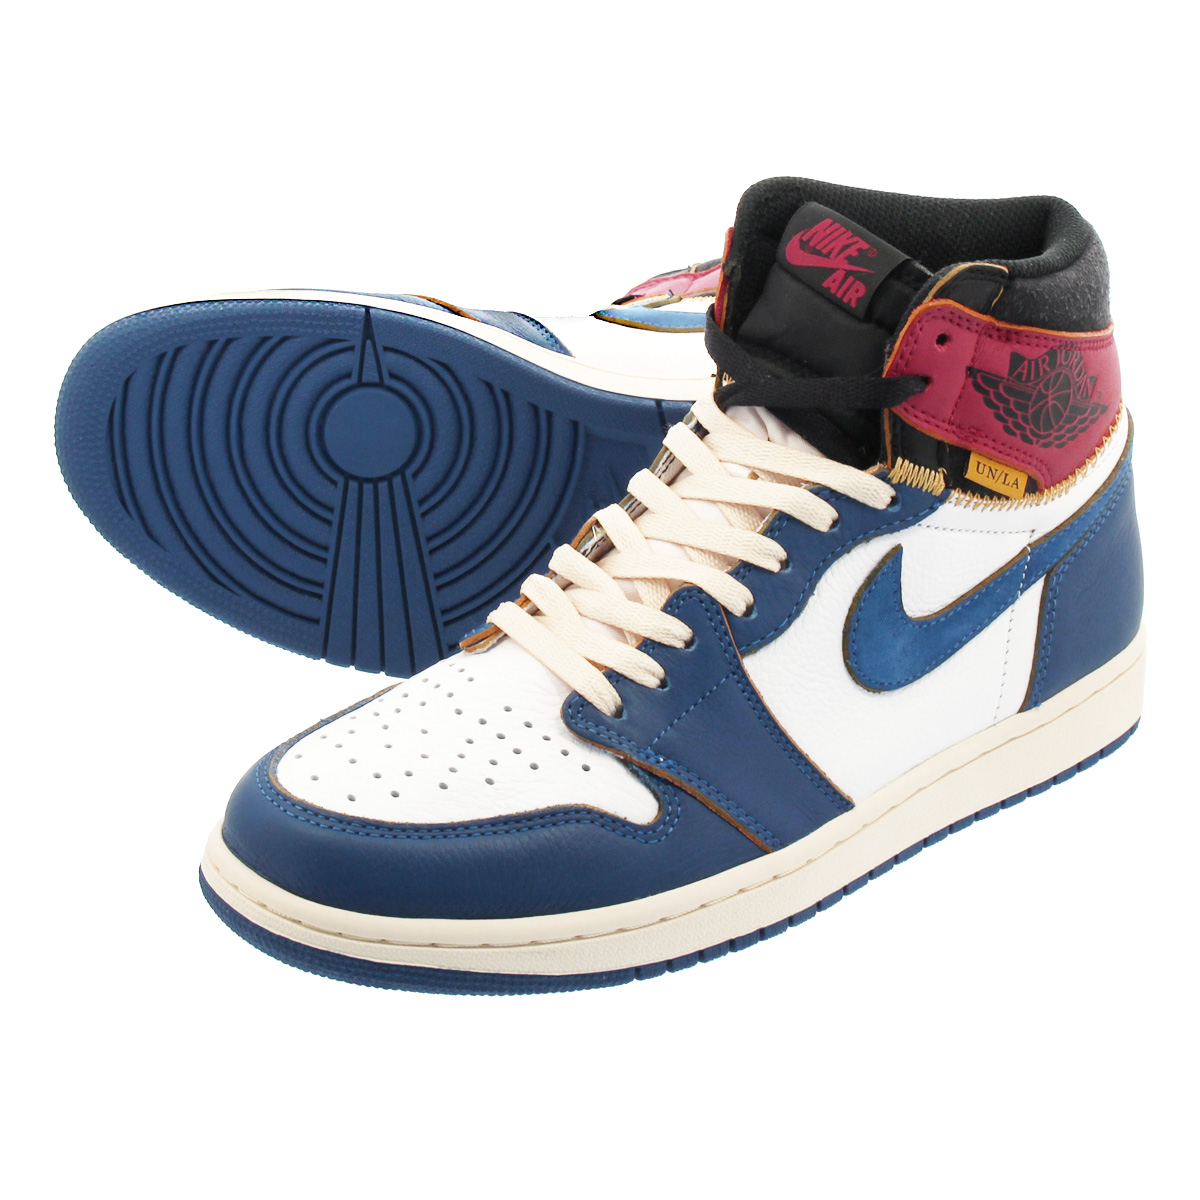 f1b2bf1bfc7 LOWTEX PLUS  NIKE AIR JORDAN 1 RETRO HIGH OG NRG Nike Air Jordan 1  nostalgic high OG NRG union WHITE STORM BLUE VARSITY RED BLACK bv1300-146